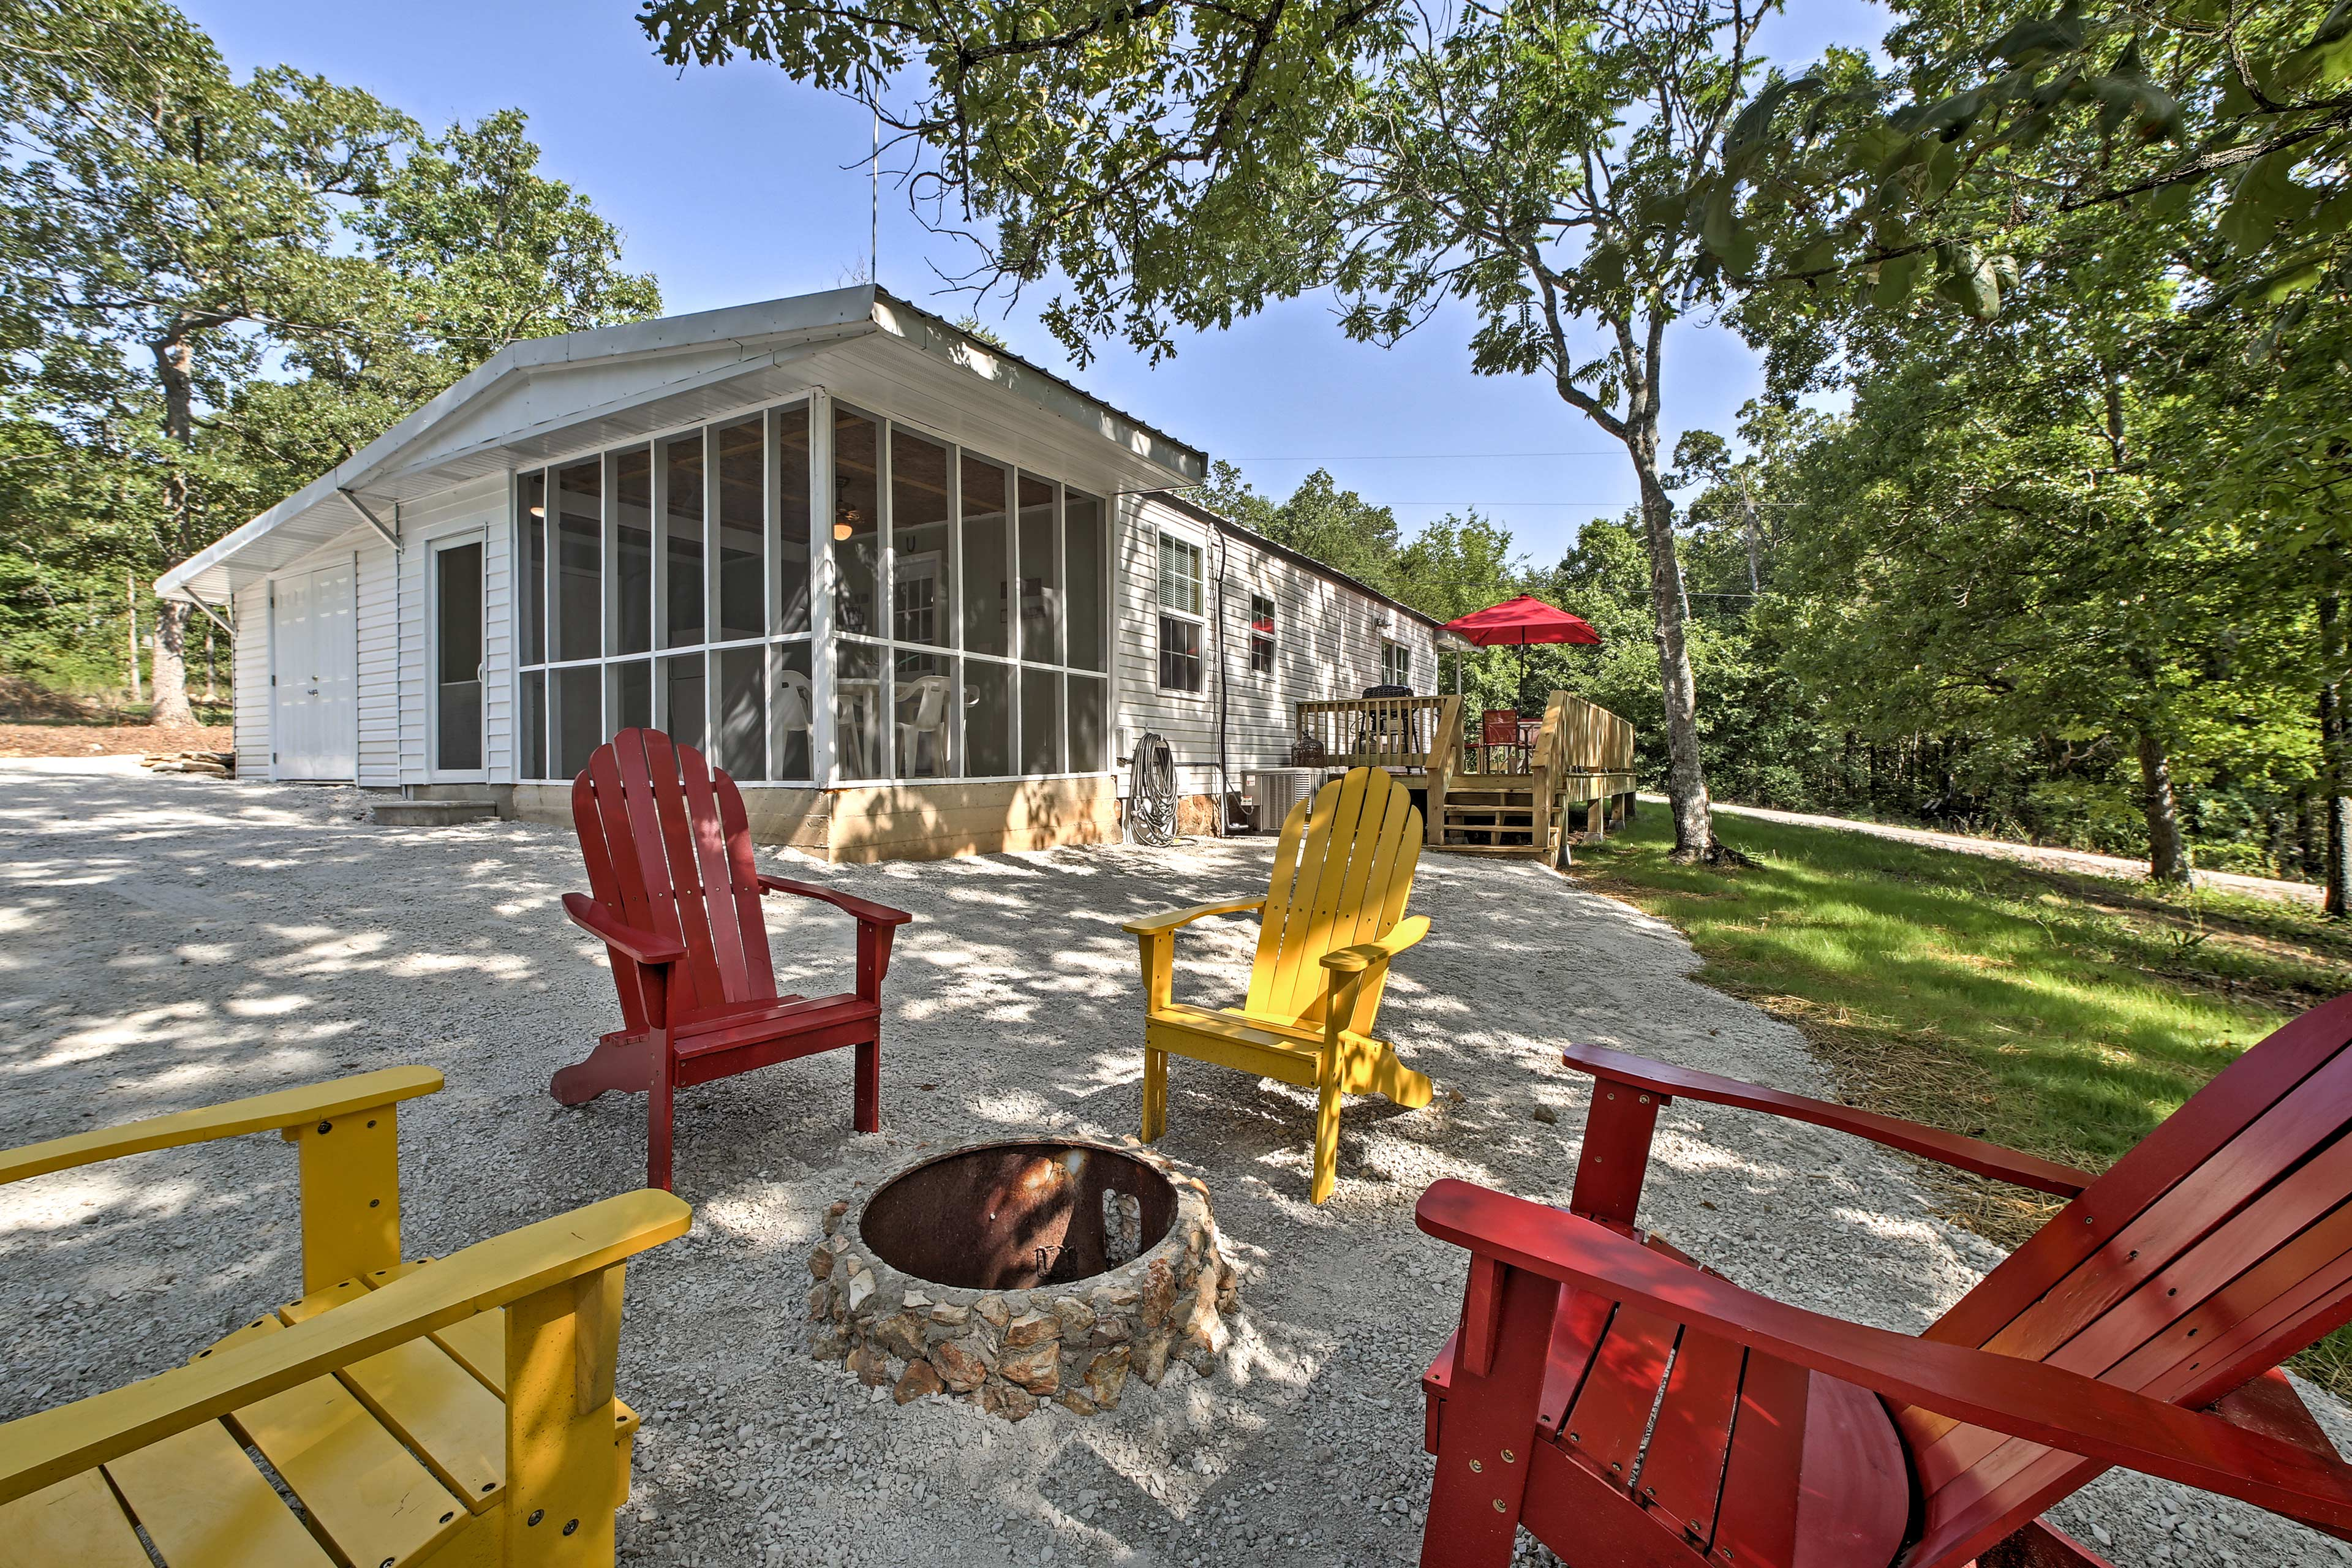 Up to 9 guests can enjoy the peaceful nature of this vacation rental home!